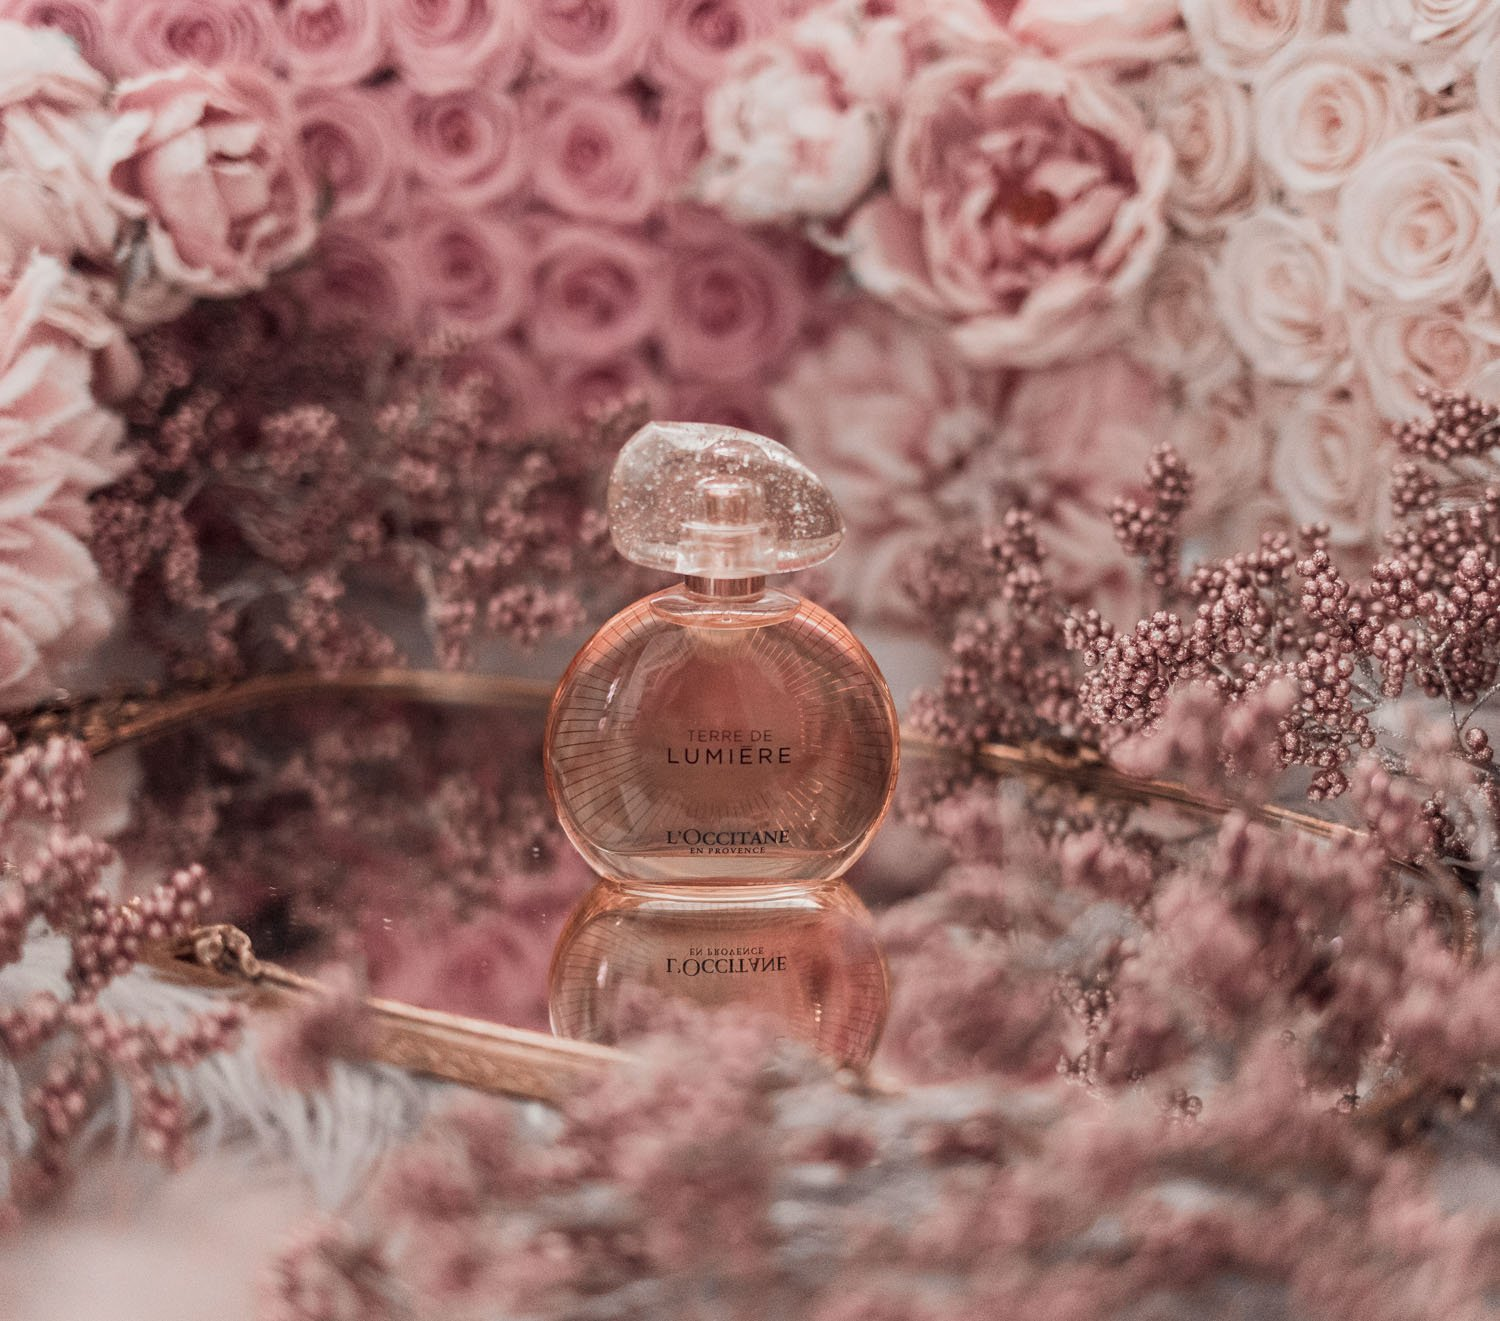 Feminine fashion blogger Elizabeth Hugen of Lizzie in Lace shares the best feminine perfumes and her girly fragrance collection including L'Occitane Terre de Lumiere